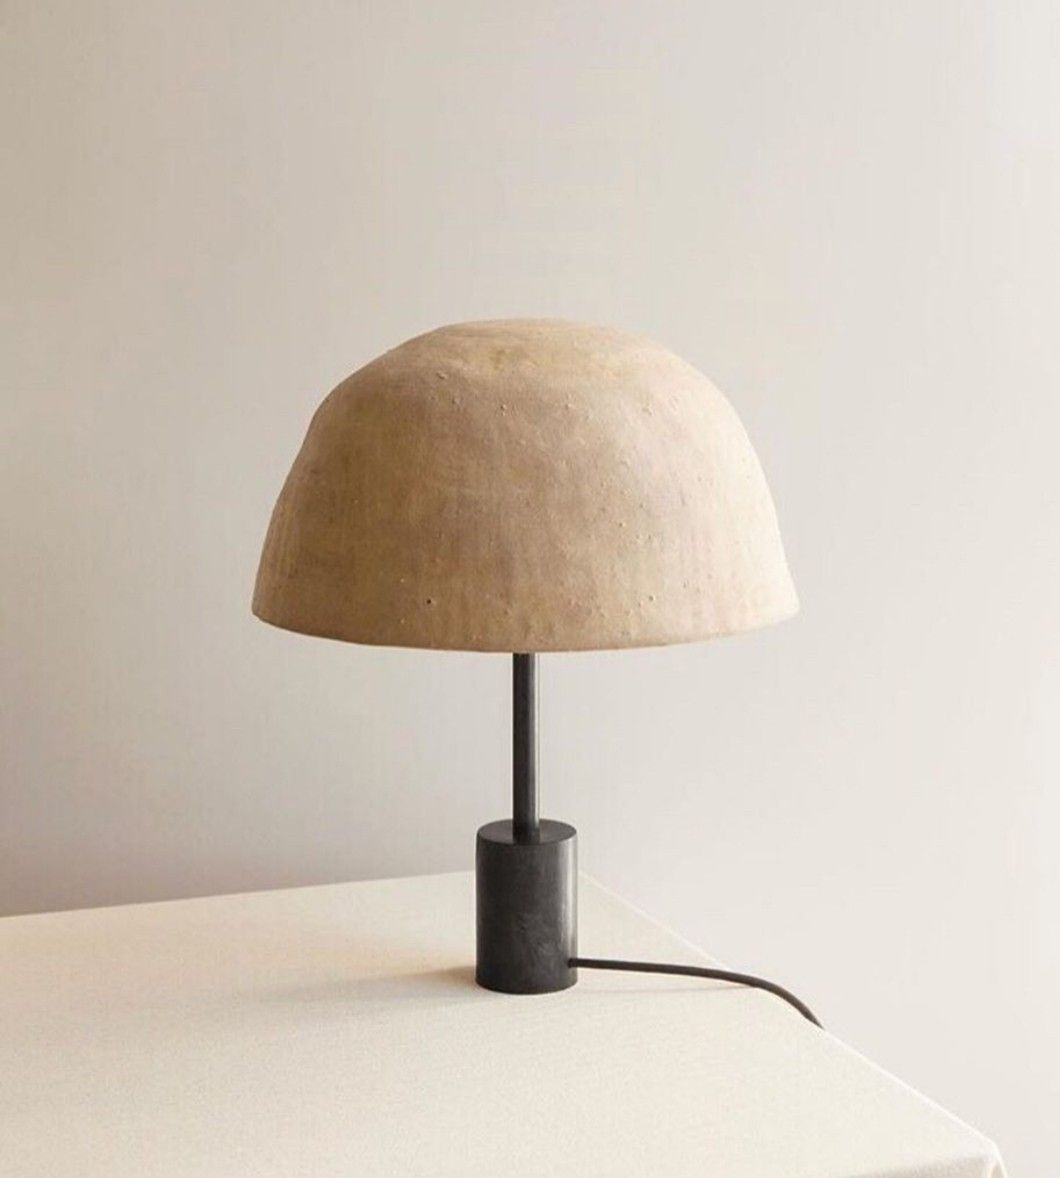 Pin By Alexandra Hitchcock On Lighting In 2019 Table Lamp